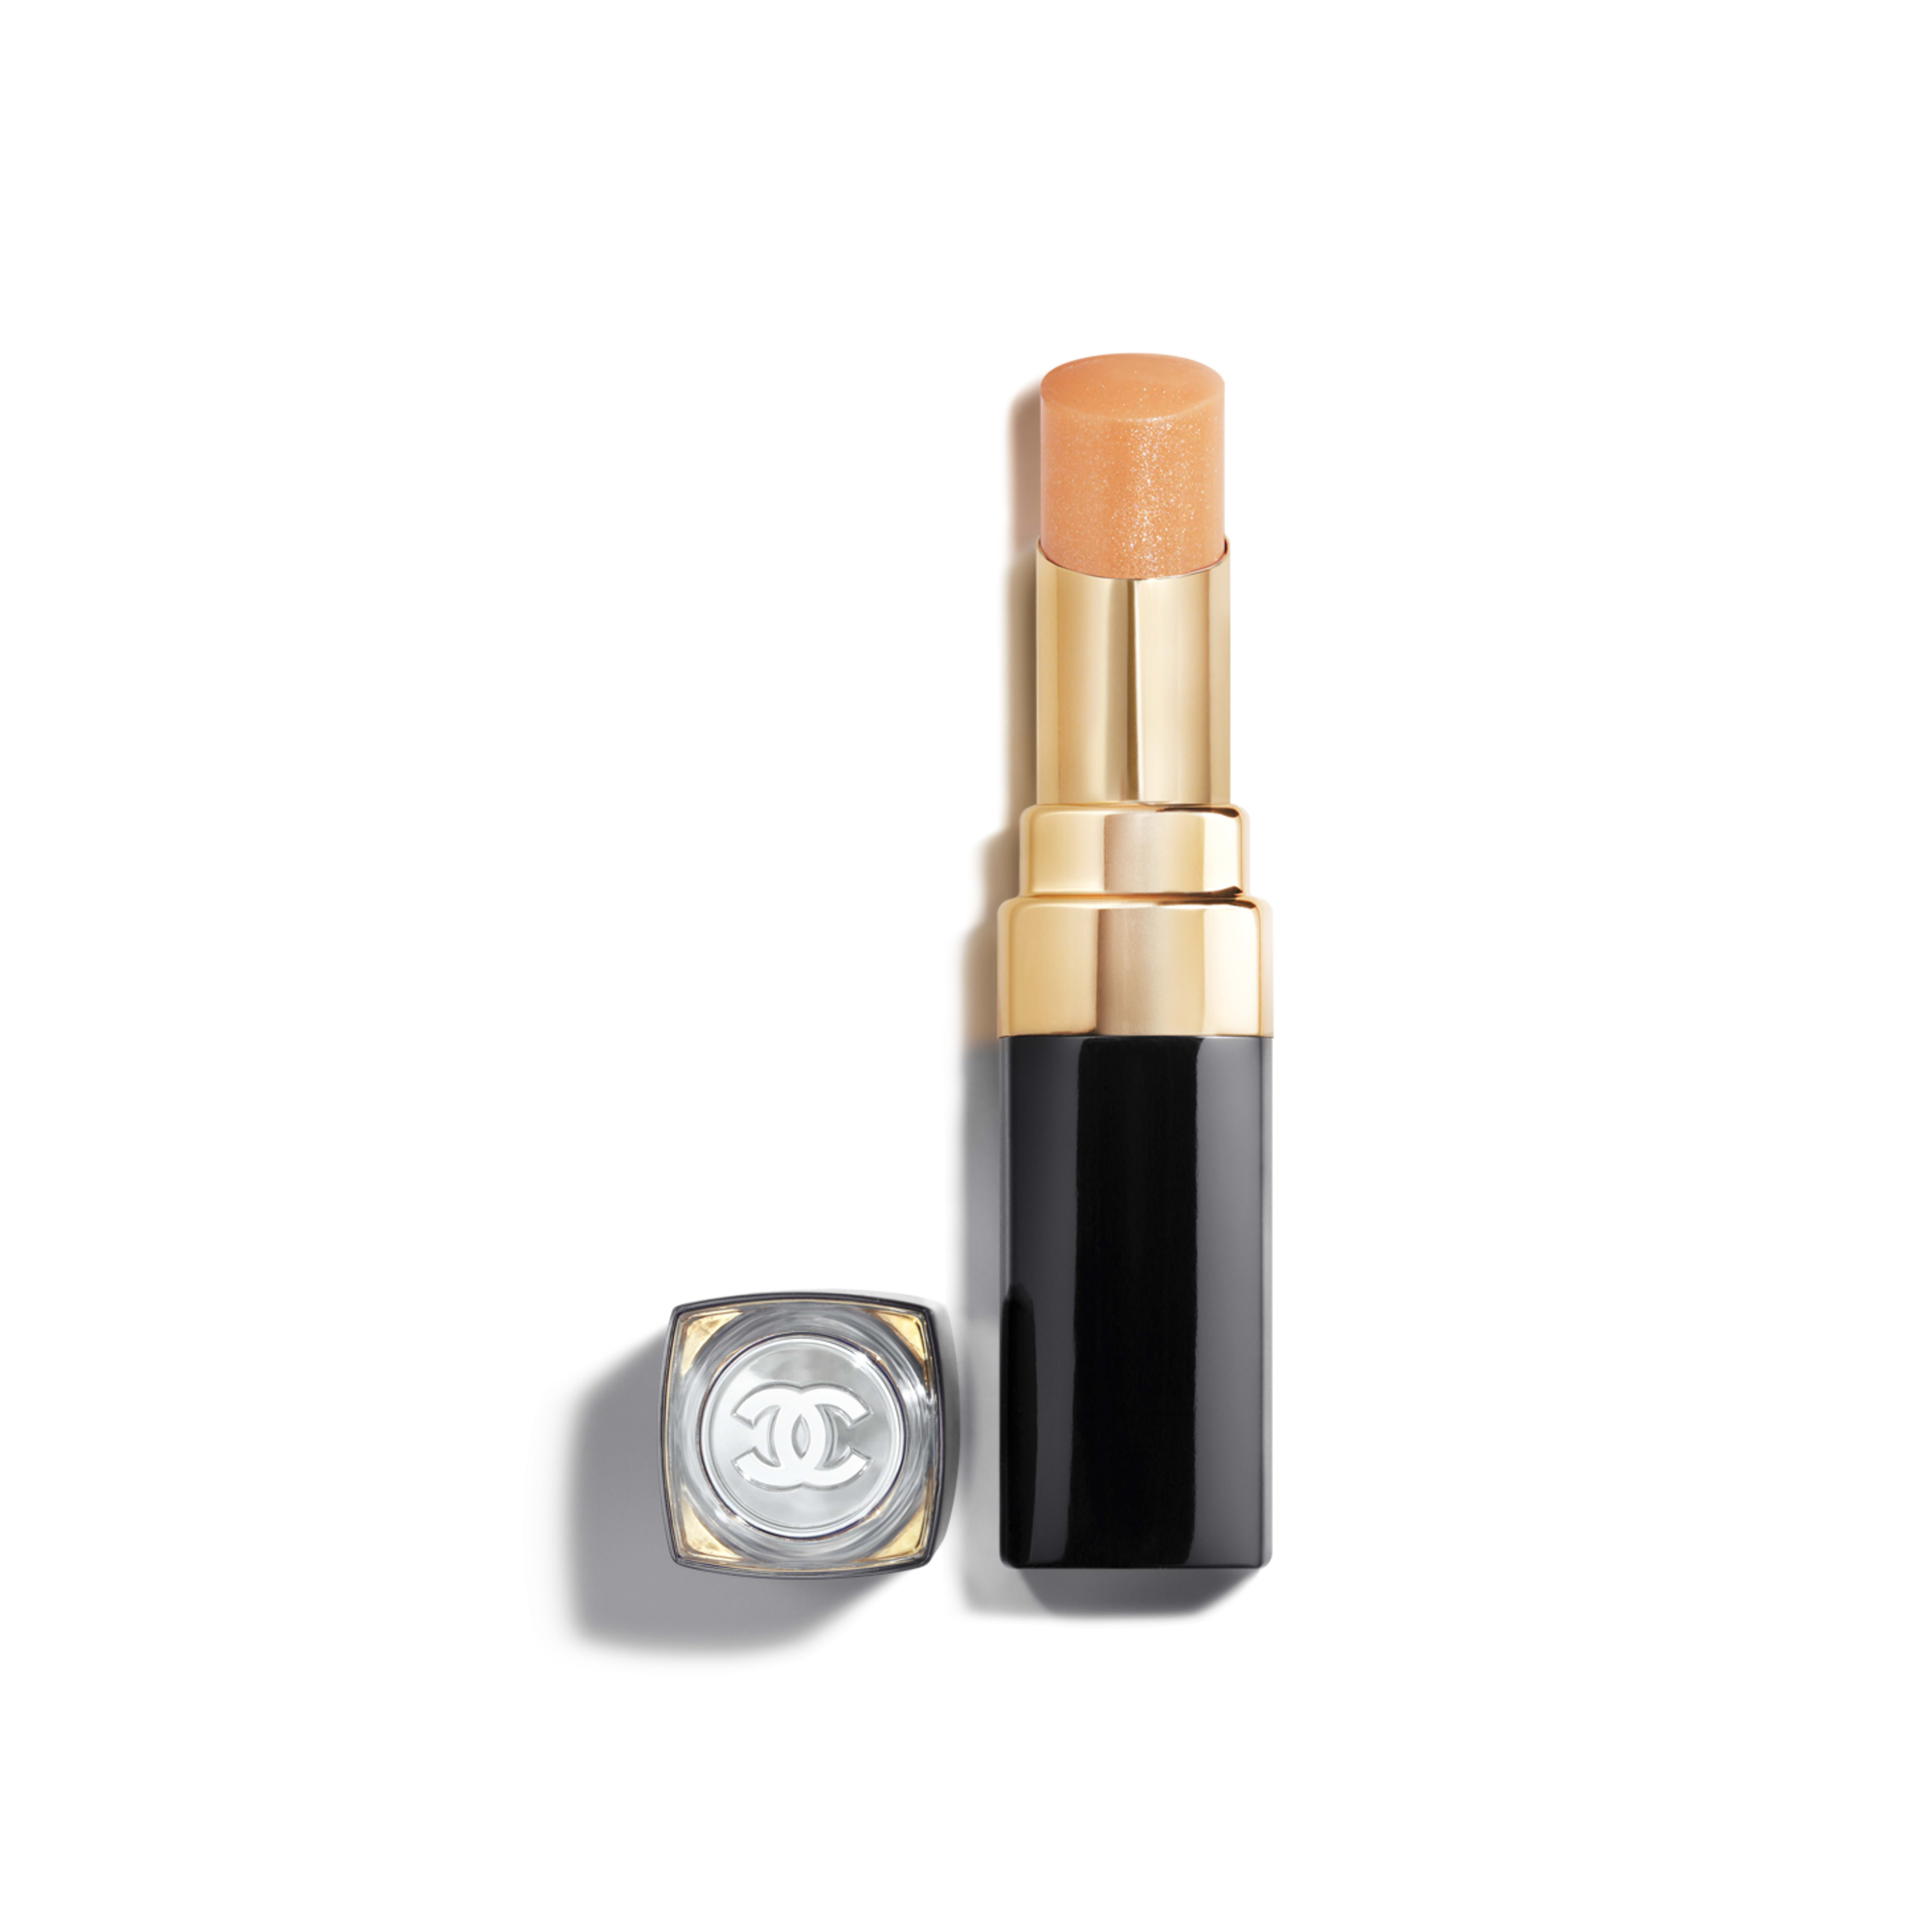 ROUGE COCO FLASH TOP COAT - makeup - 3g - มุมมองปัจจุบัน